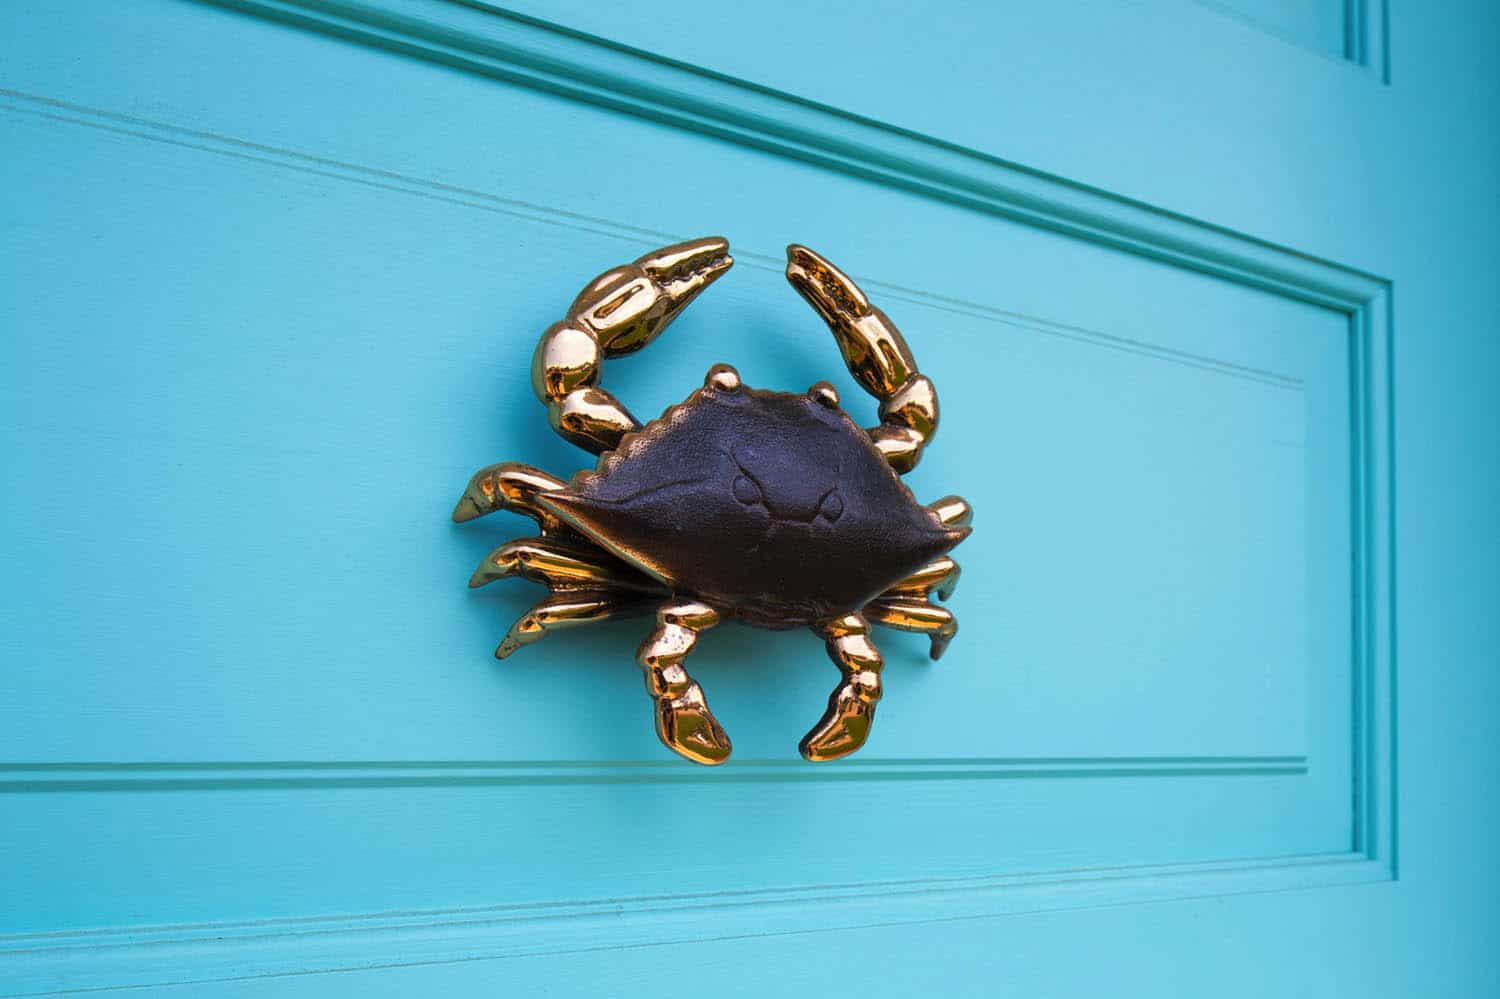 beach-style-door-knocker-detail